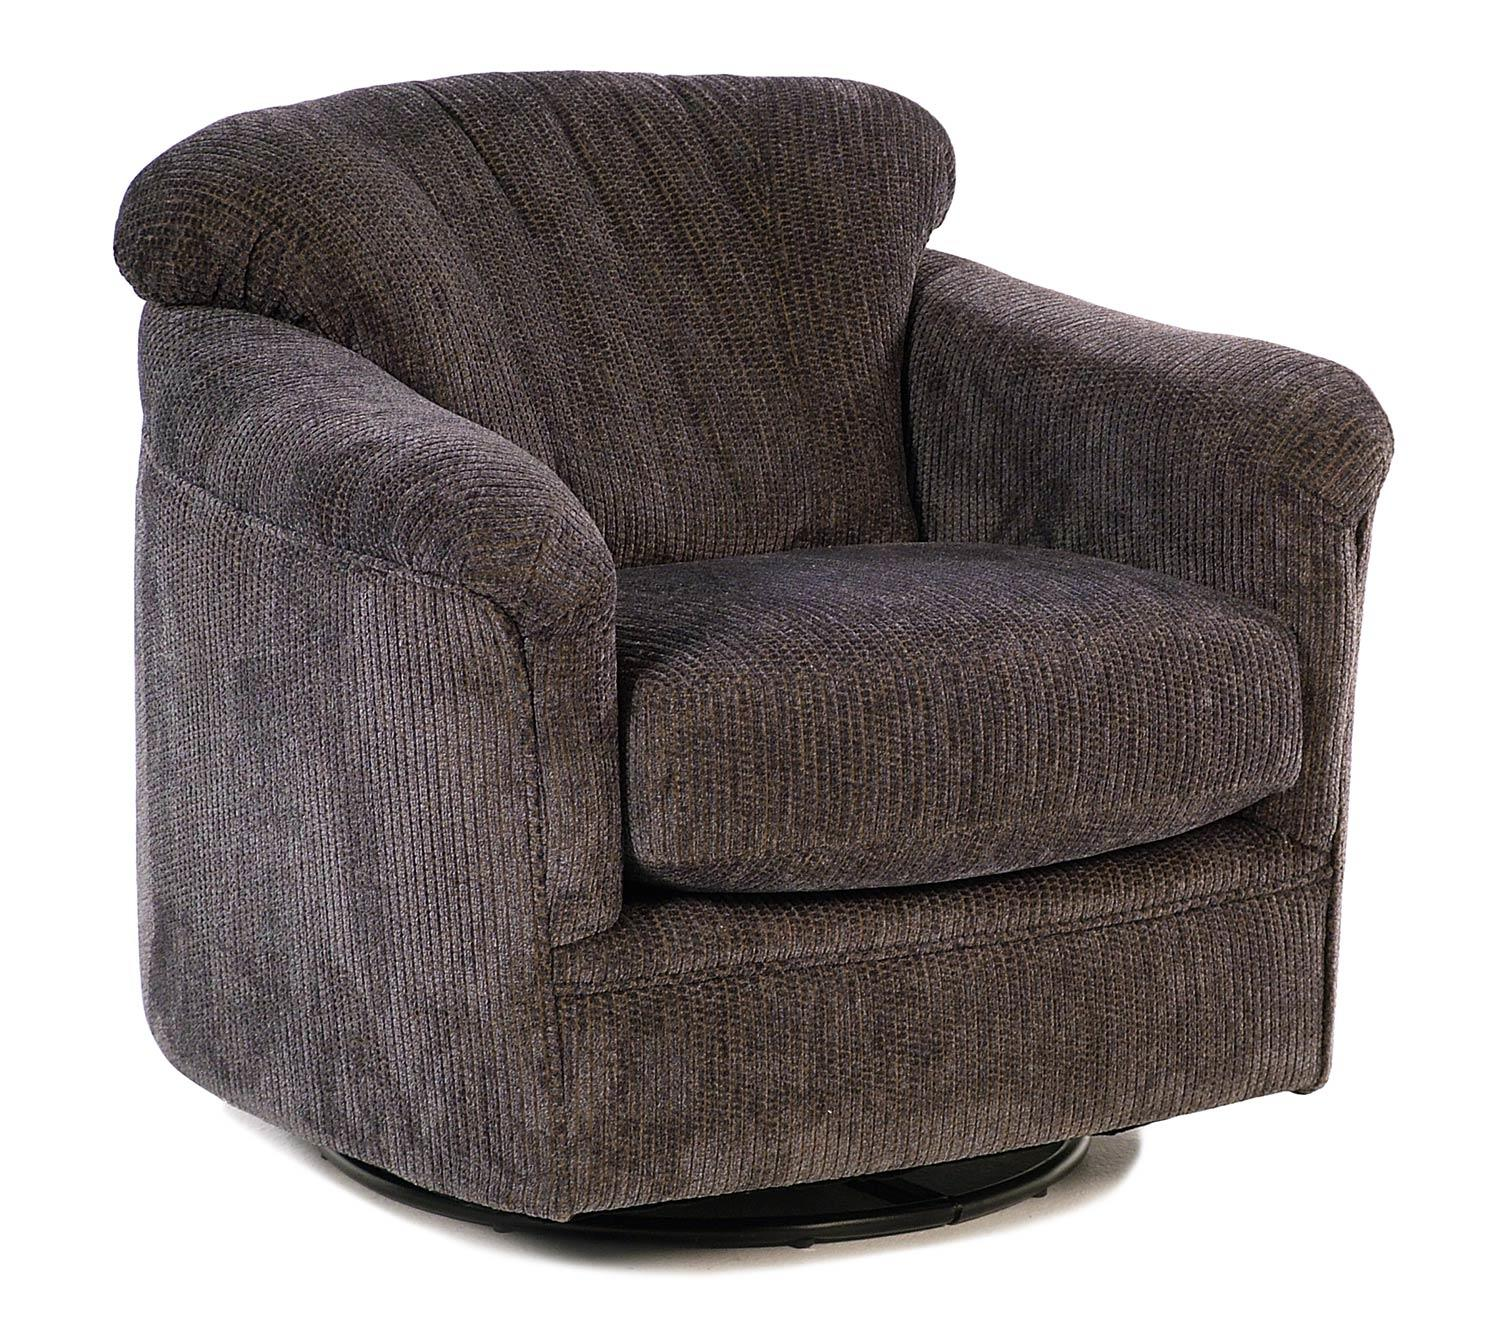 Flexsteel Accents Riverton Swivel Glide Chair - Item Number: 070C-13